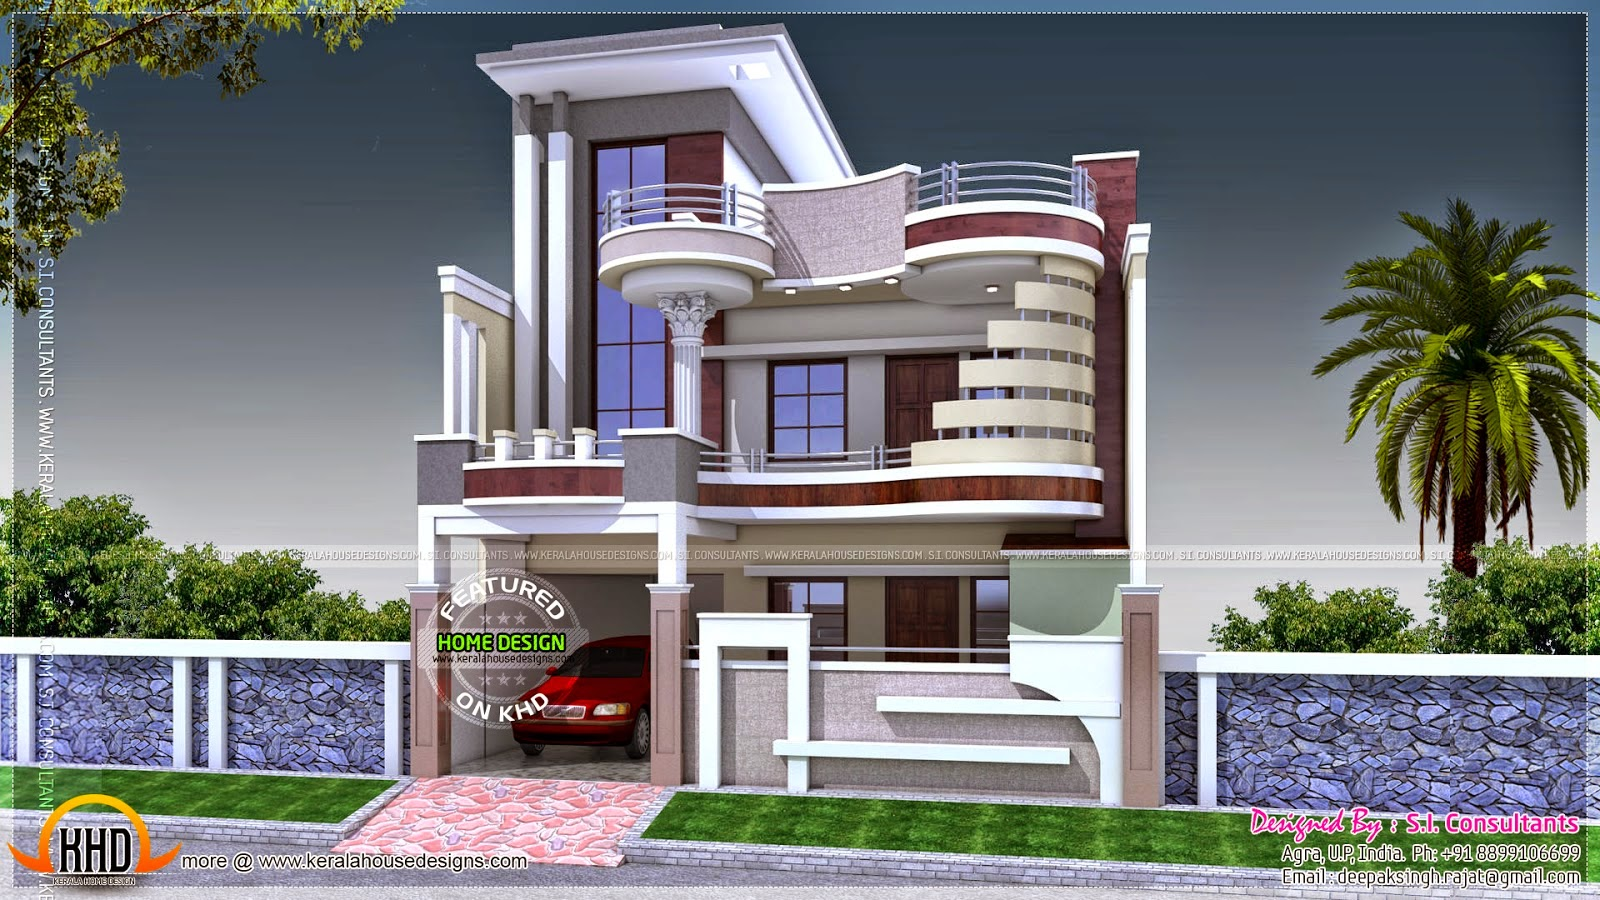 Tropicalizer indian house design Indian house structure design